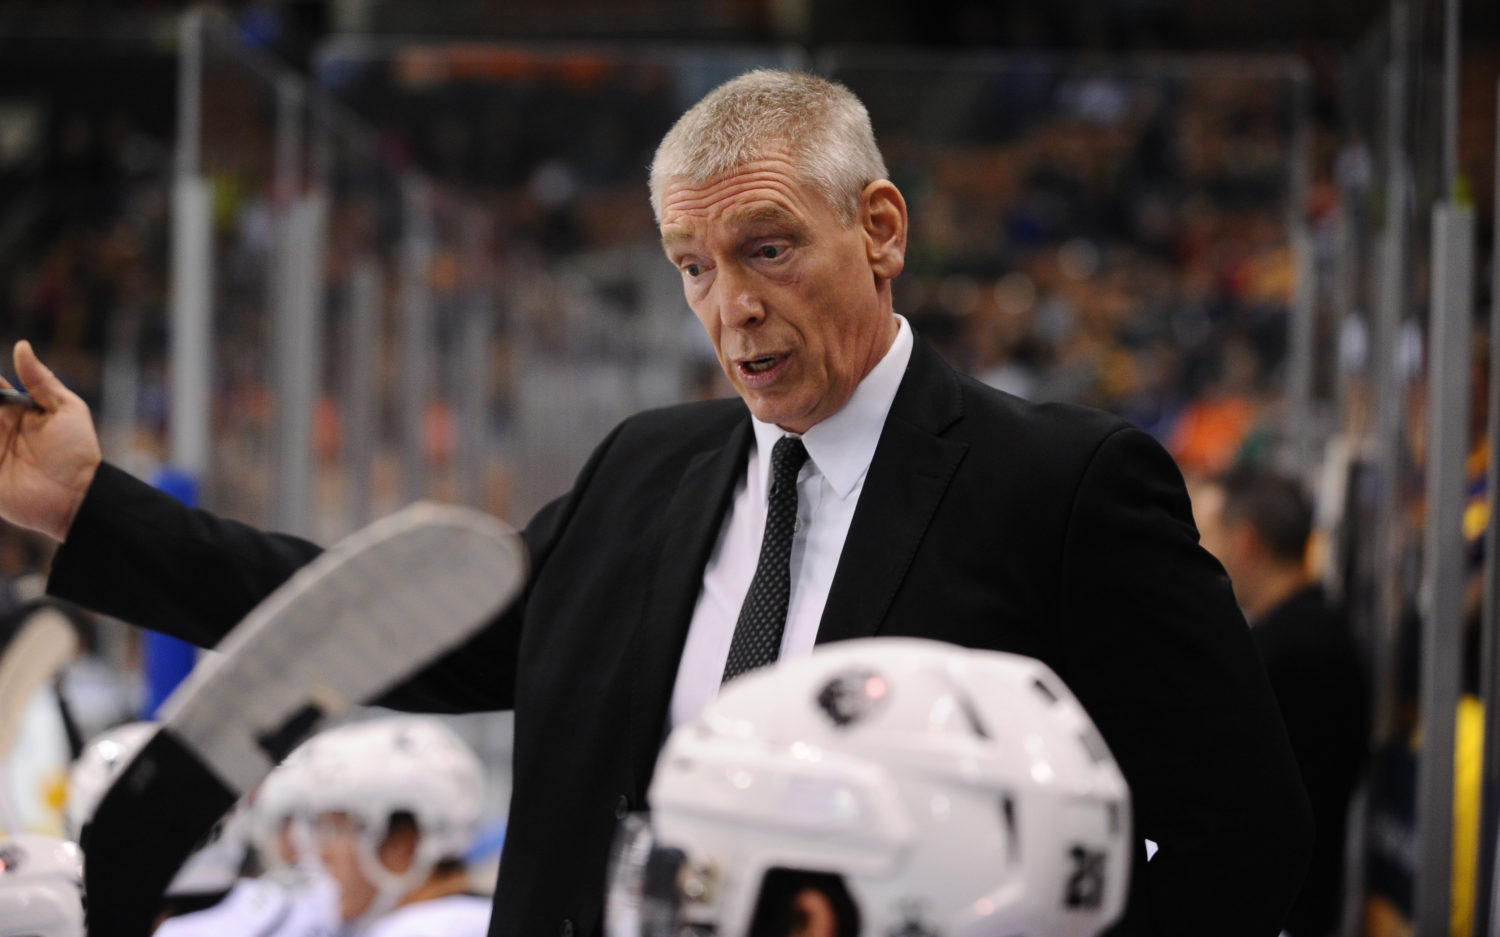 Kings will not renew contract of Reign Head Coach Mike Stothers - LA Kings Insider